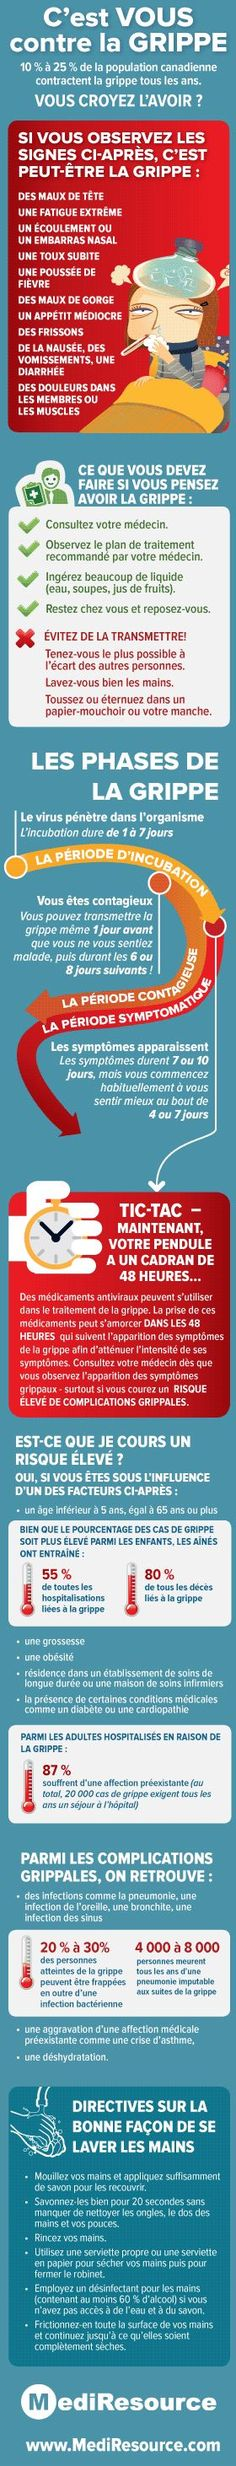 La Grippe: Infographie   Great for French thematic unit on health and nutrition